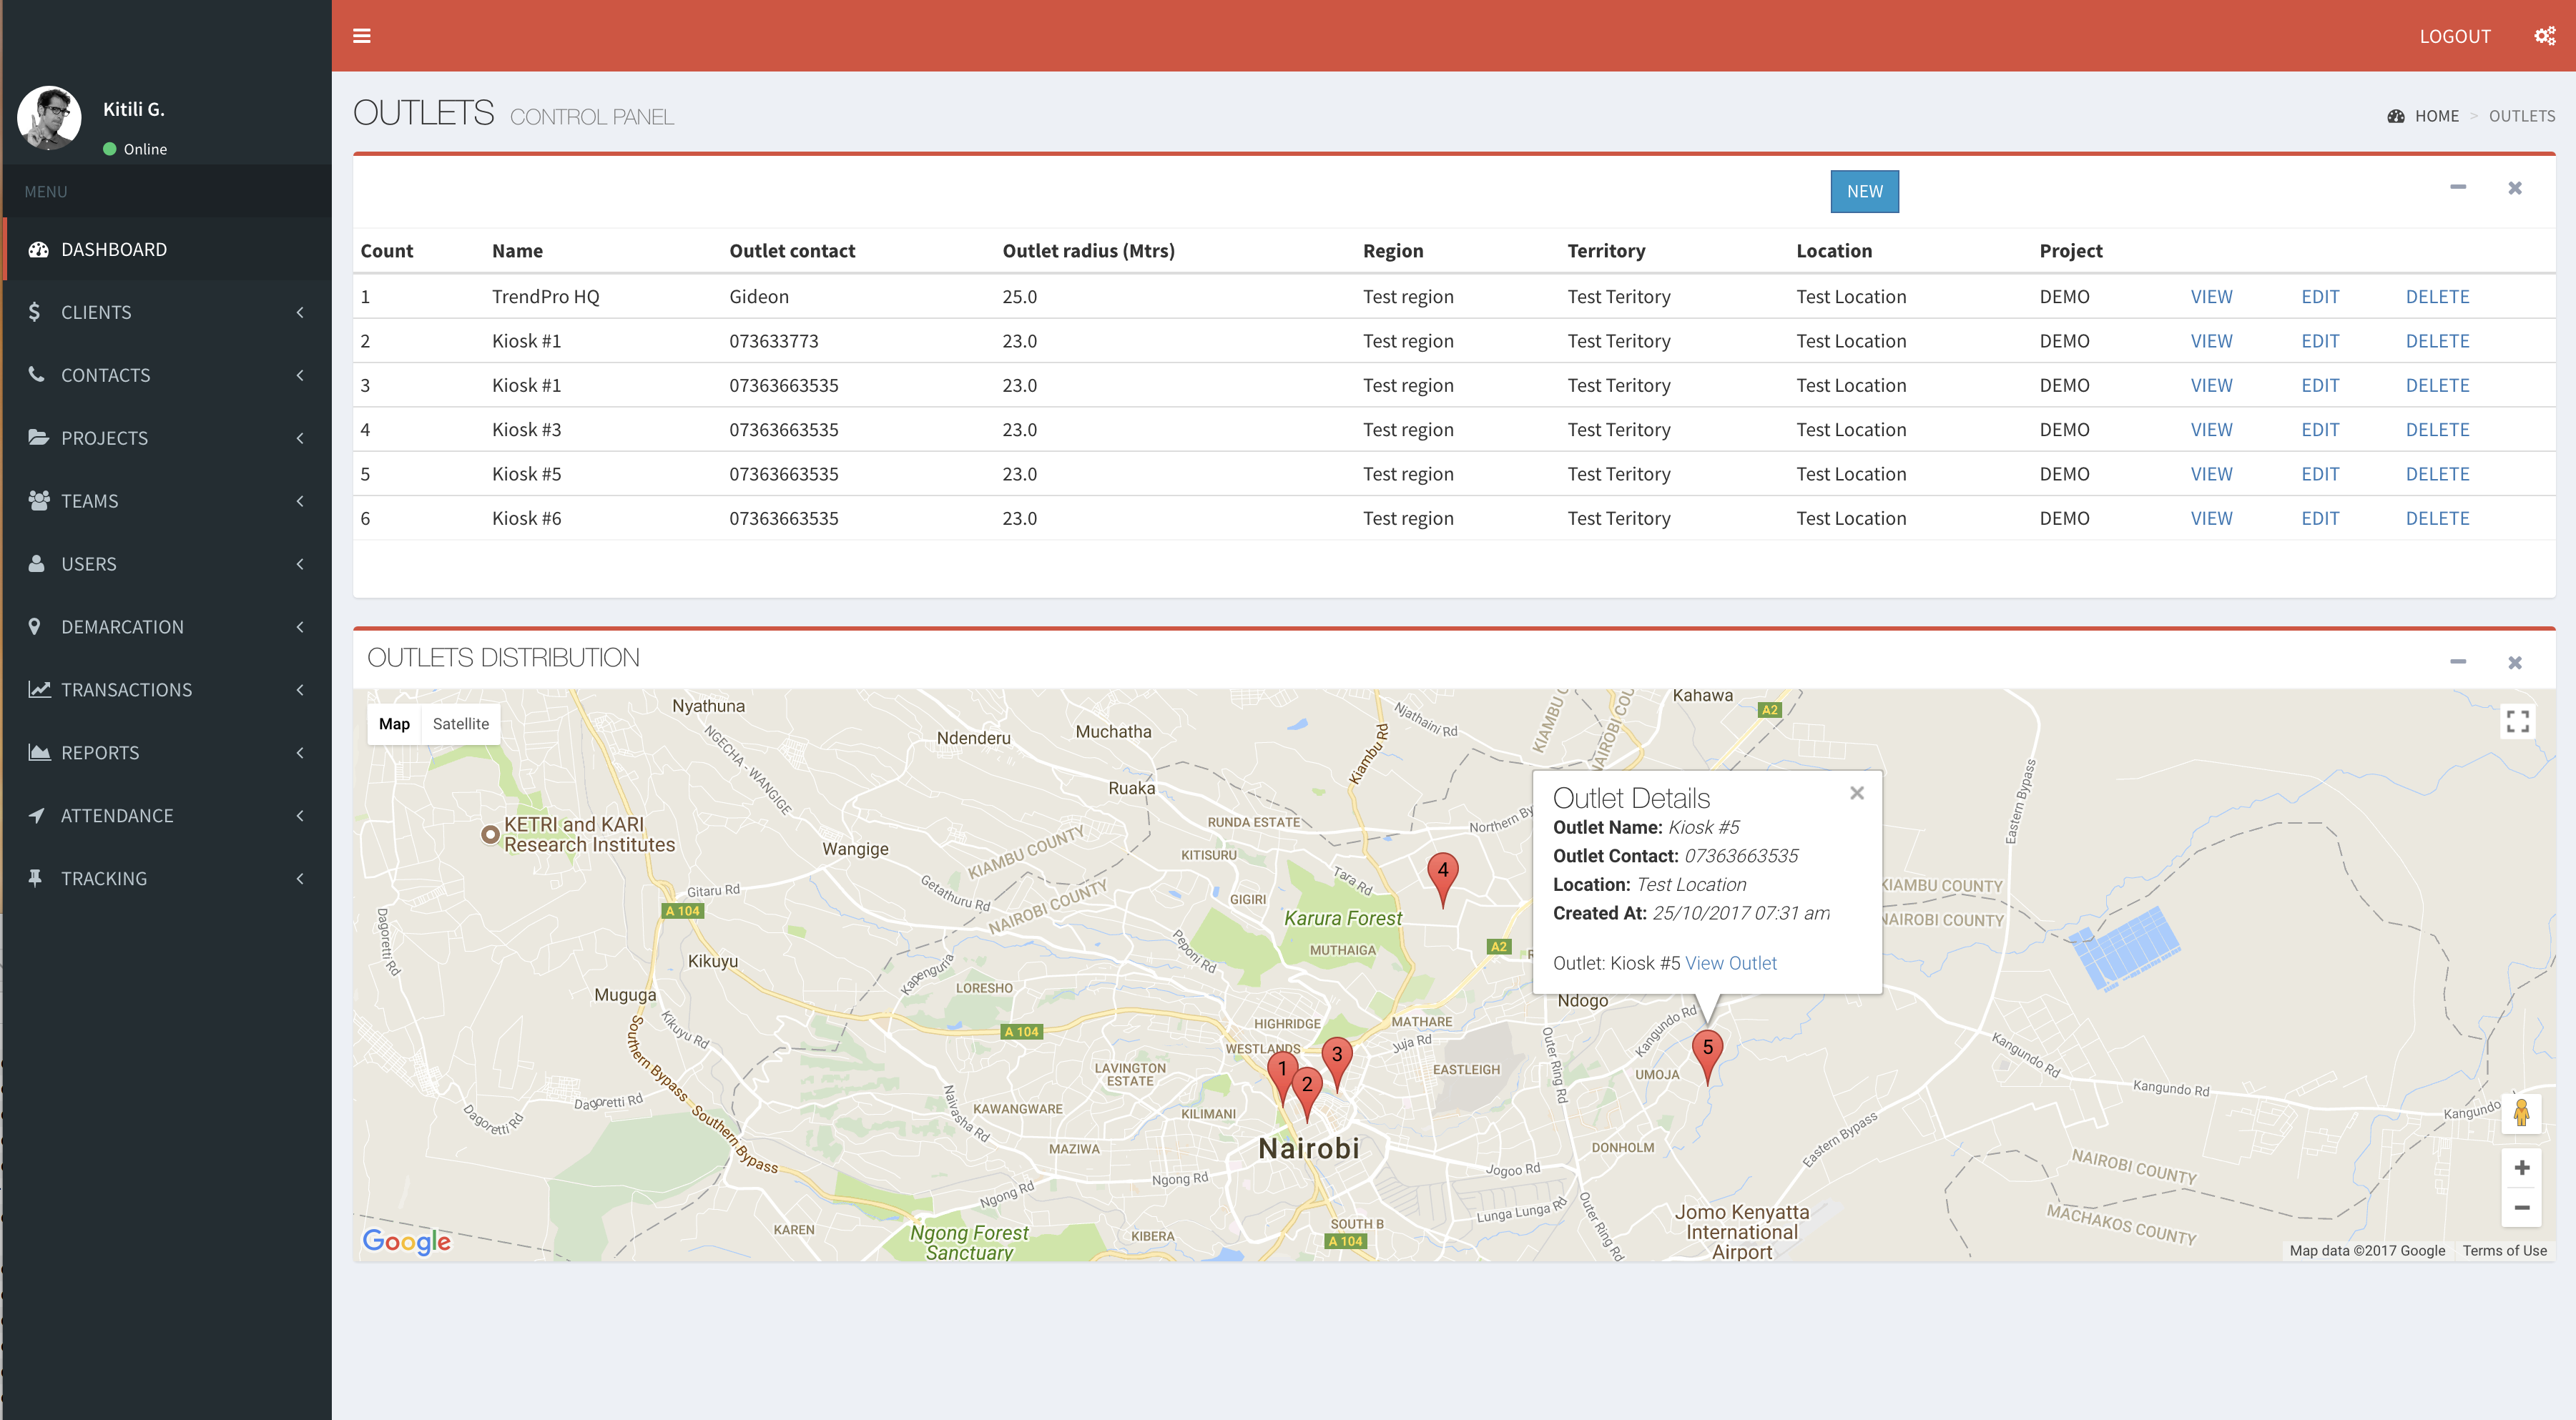 SaapCRM as a Geospatial Data Collection Tool